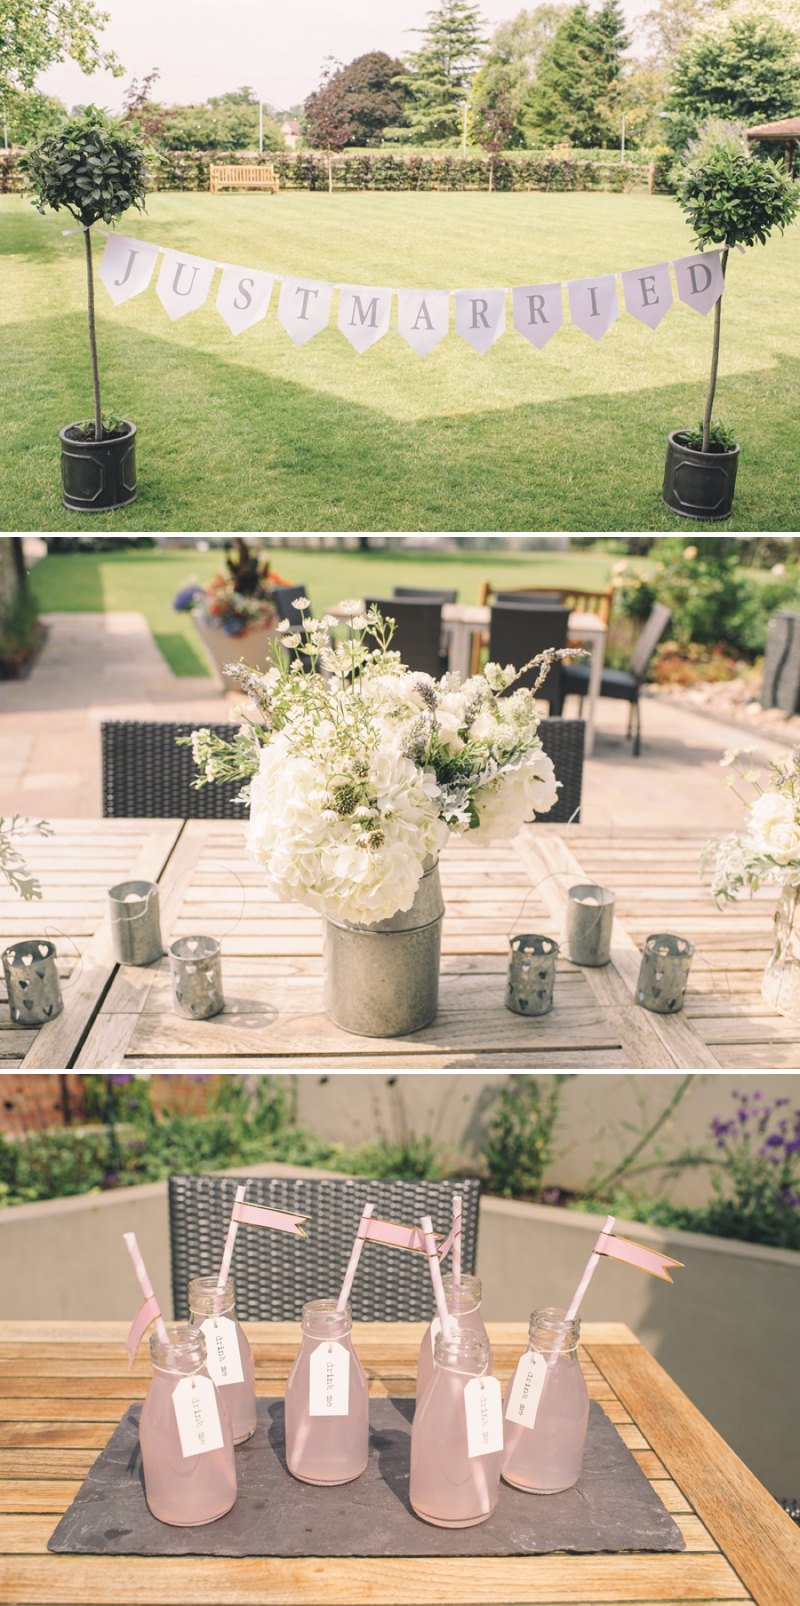 The Wedding Of My Dreams rustic and vintage wedding decorations to